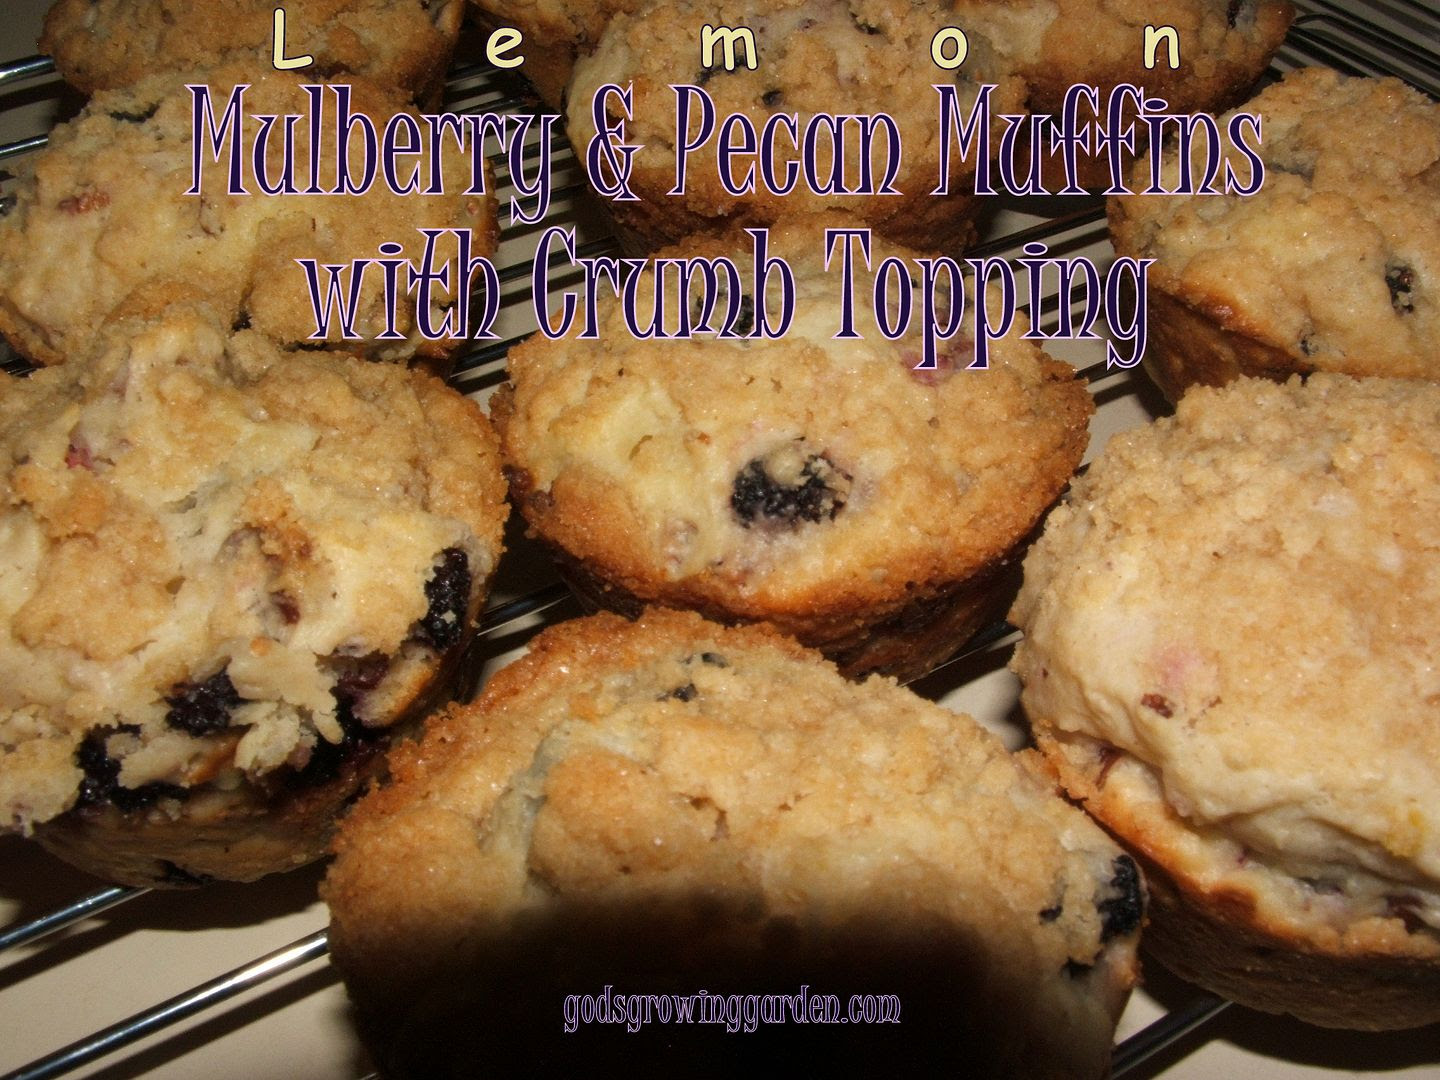 Mulberry Muffins by Angie Ouellette-Tower for godsgrowinggarden.com photo 010_zpsdc35c606.jpg